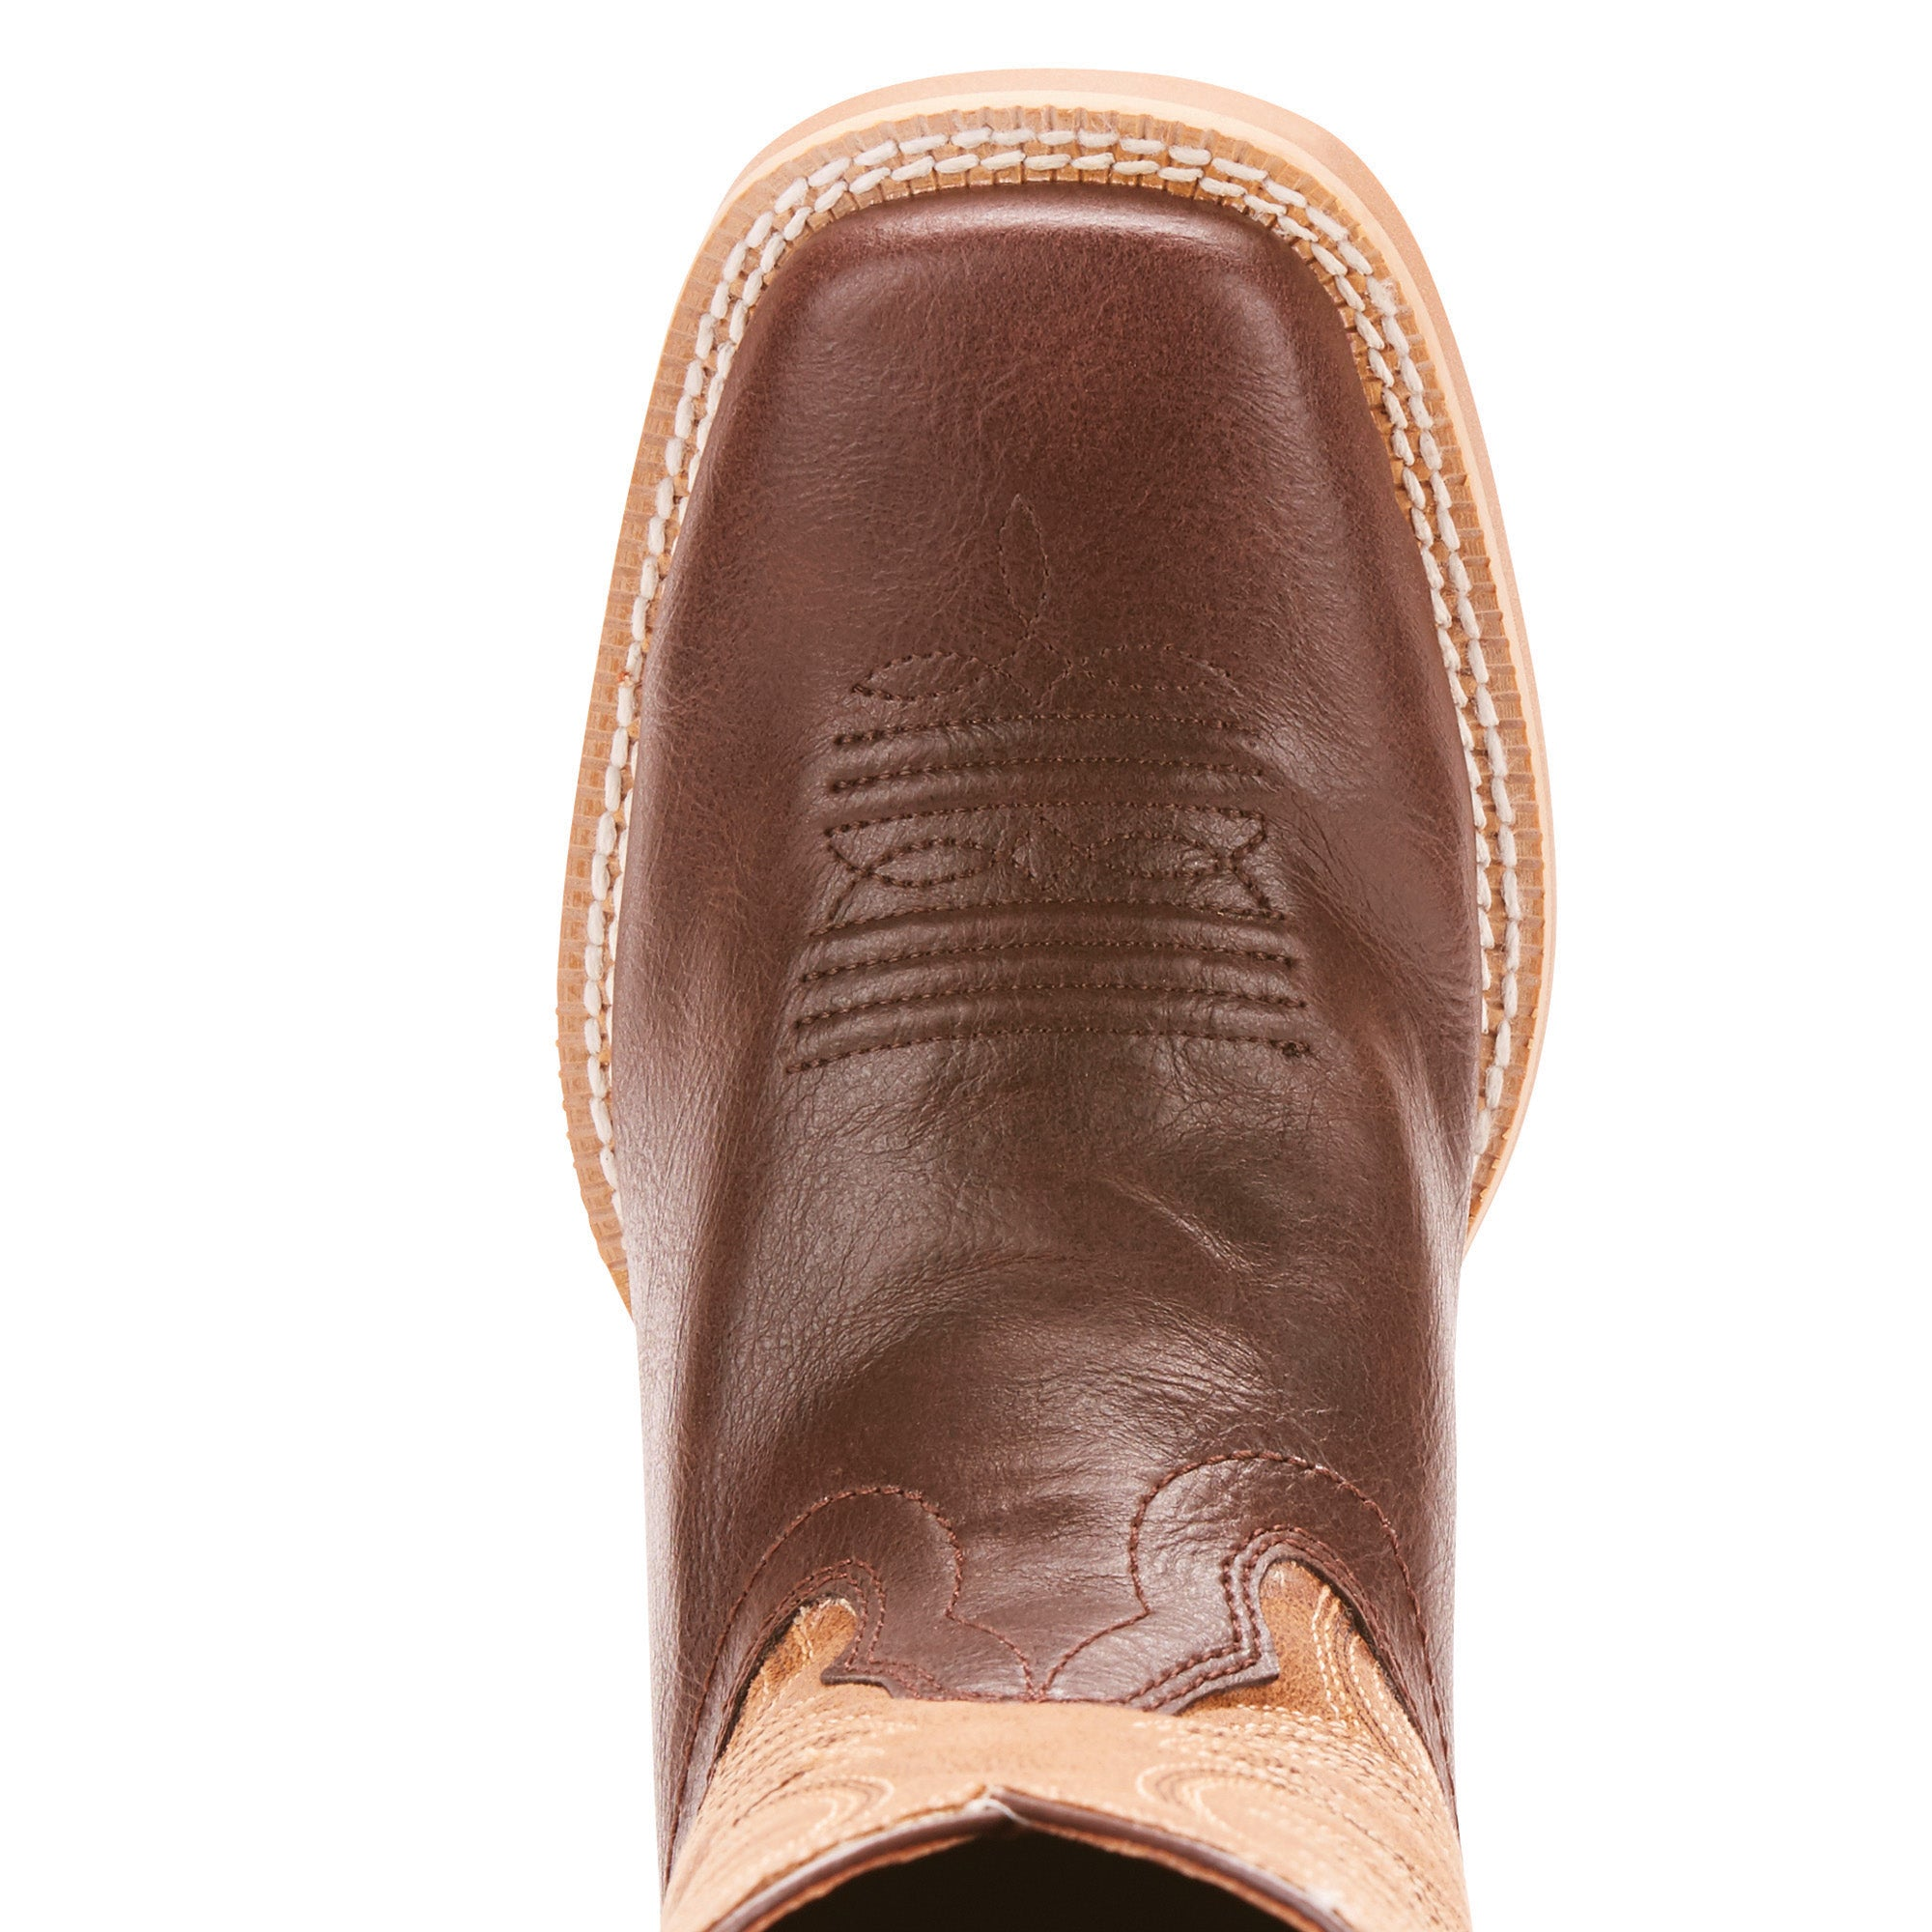 1390e32b185 Kid's Ariat Brumby Western Boot Brown #10025169 – Allens Boots